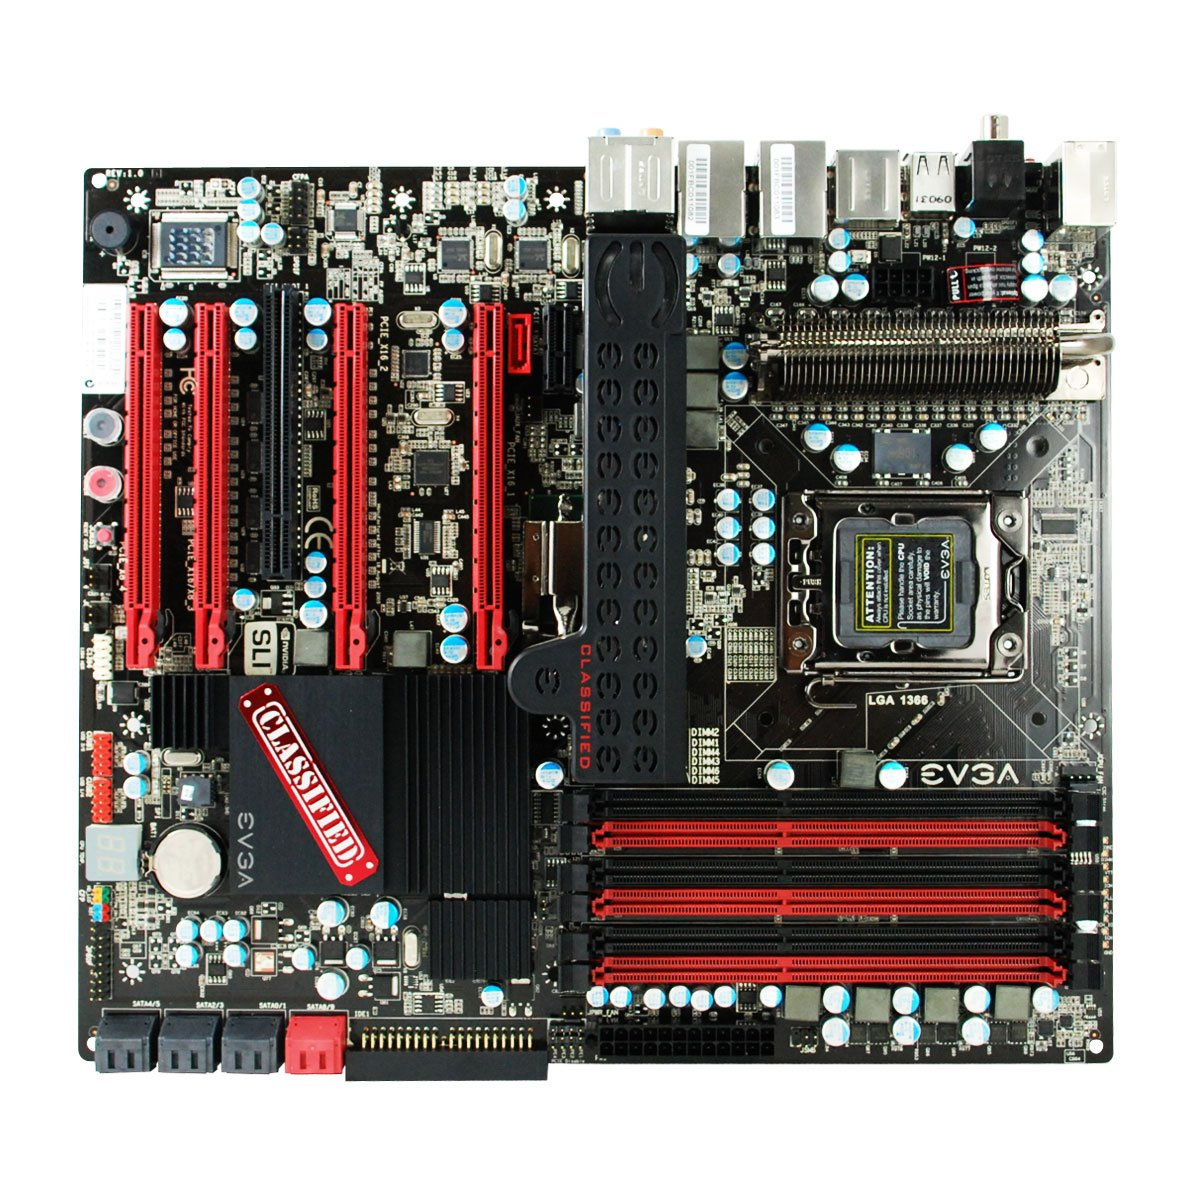 Amazon.com: EVGA 141-BL-E760-A1 X58 Classified SLI Mainboard: Electronics